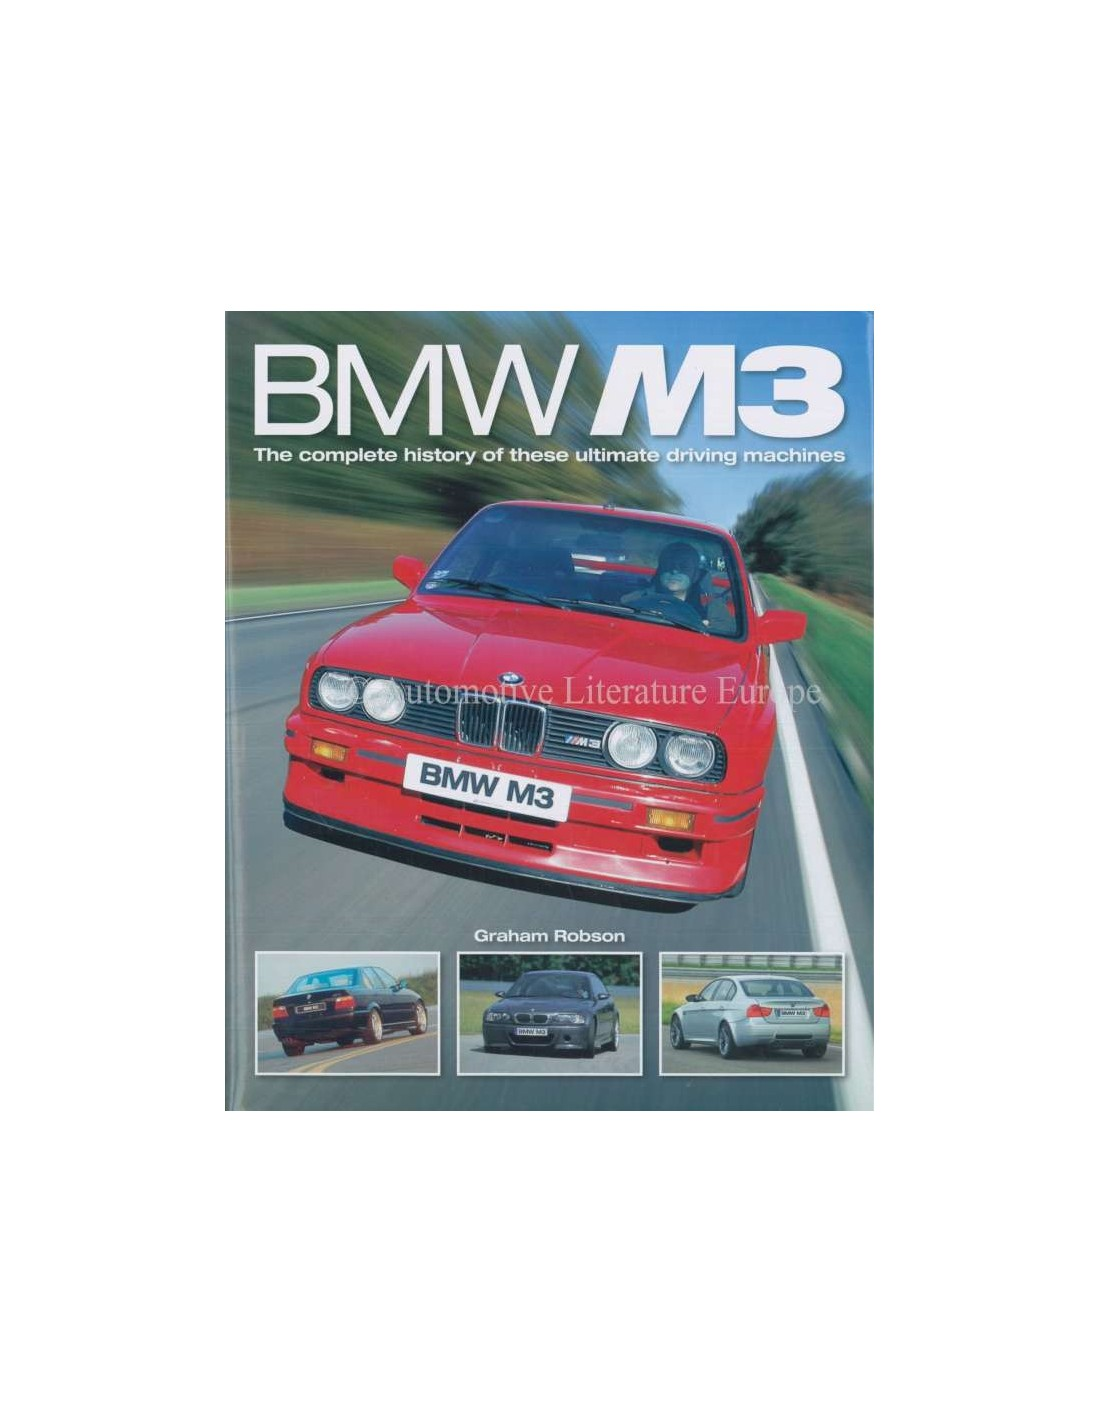 Bmw M3 Engine History: THE COMPLETE HISTORY OF THESE ULTIMATE DRIVING